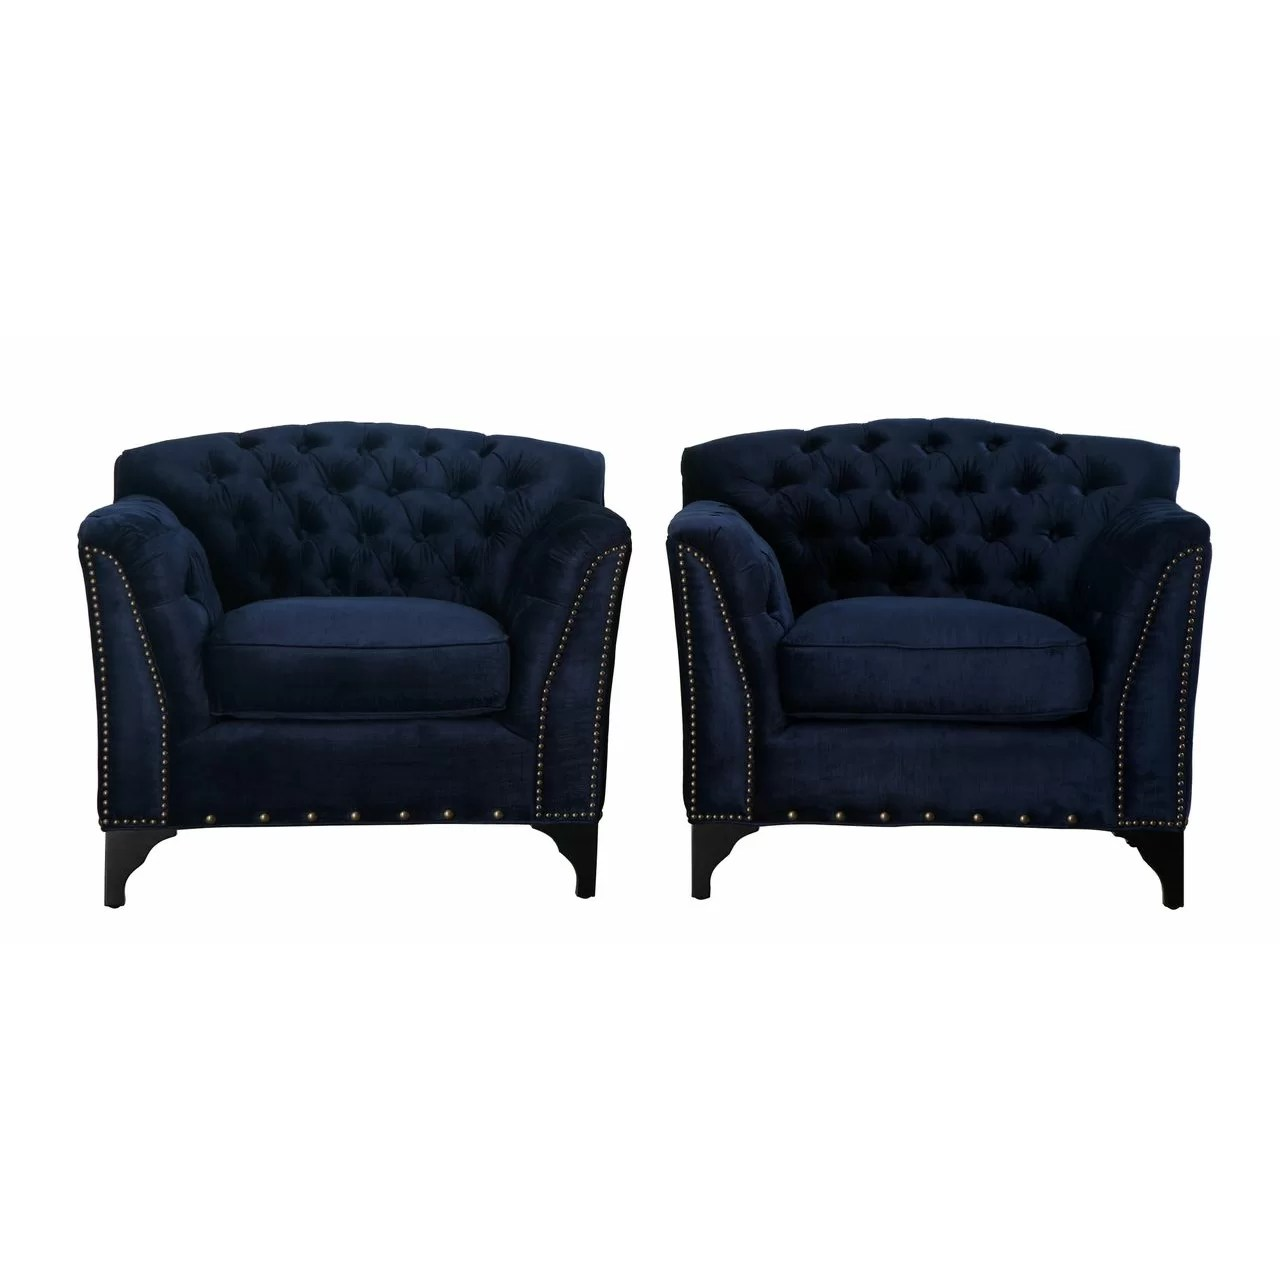 Velvet Club Chair House Of Hampton Sunstone Velvet Club Chair And Reviews